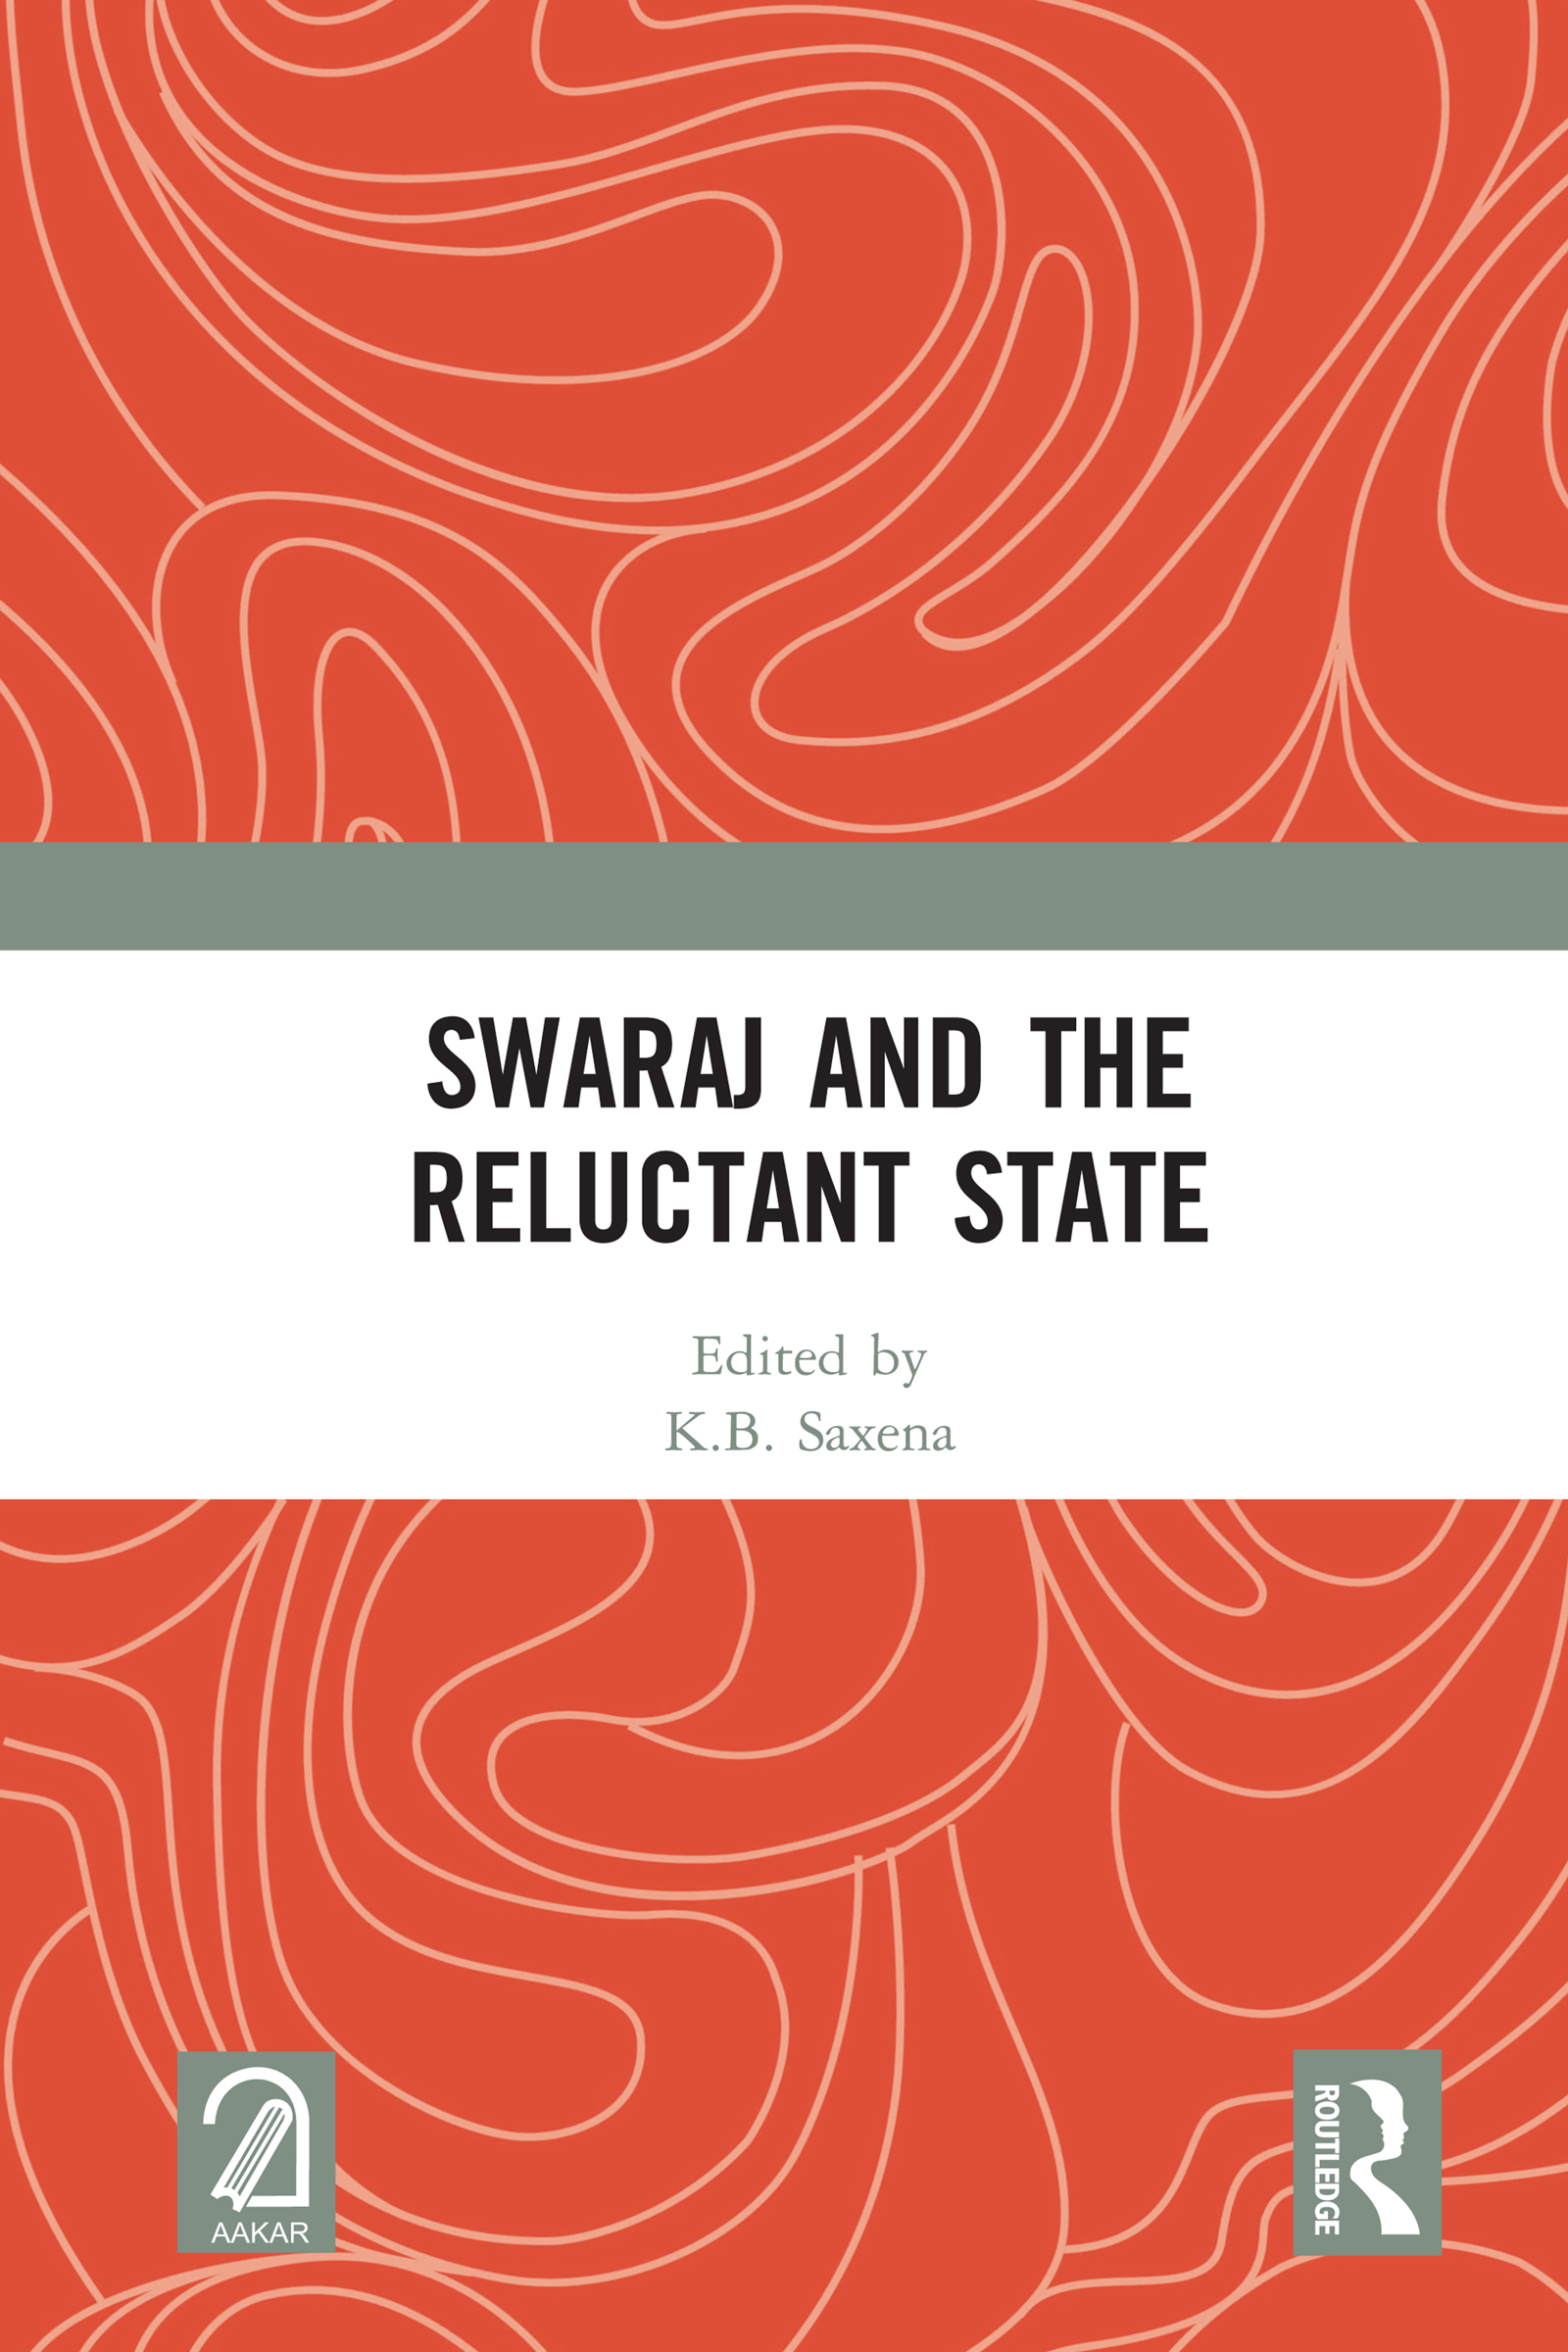 Swaraj              and the Reluctant State